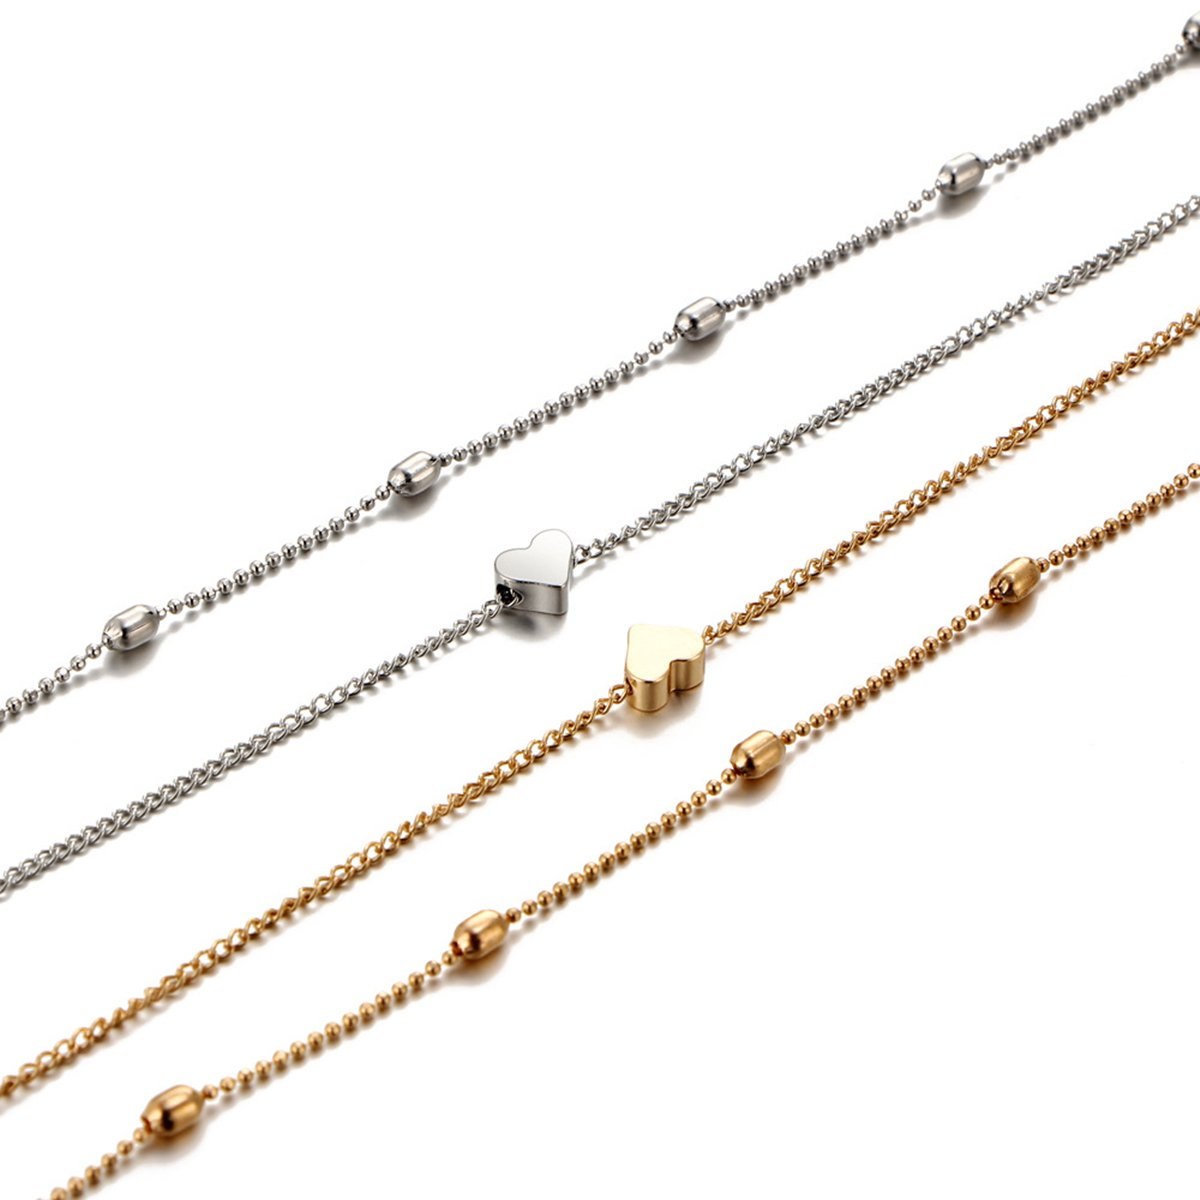 Anqifull Dainty Layered Gold Chocker Handmade Beads Fill Heart White Opal Necklace for Women Girls 012 by Anqifull (Image #5)